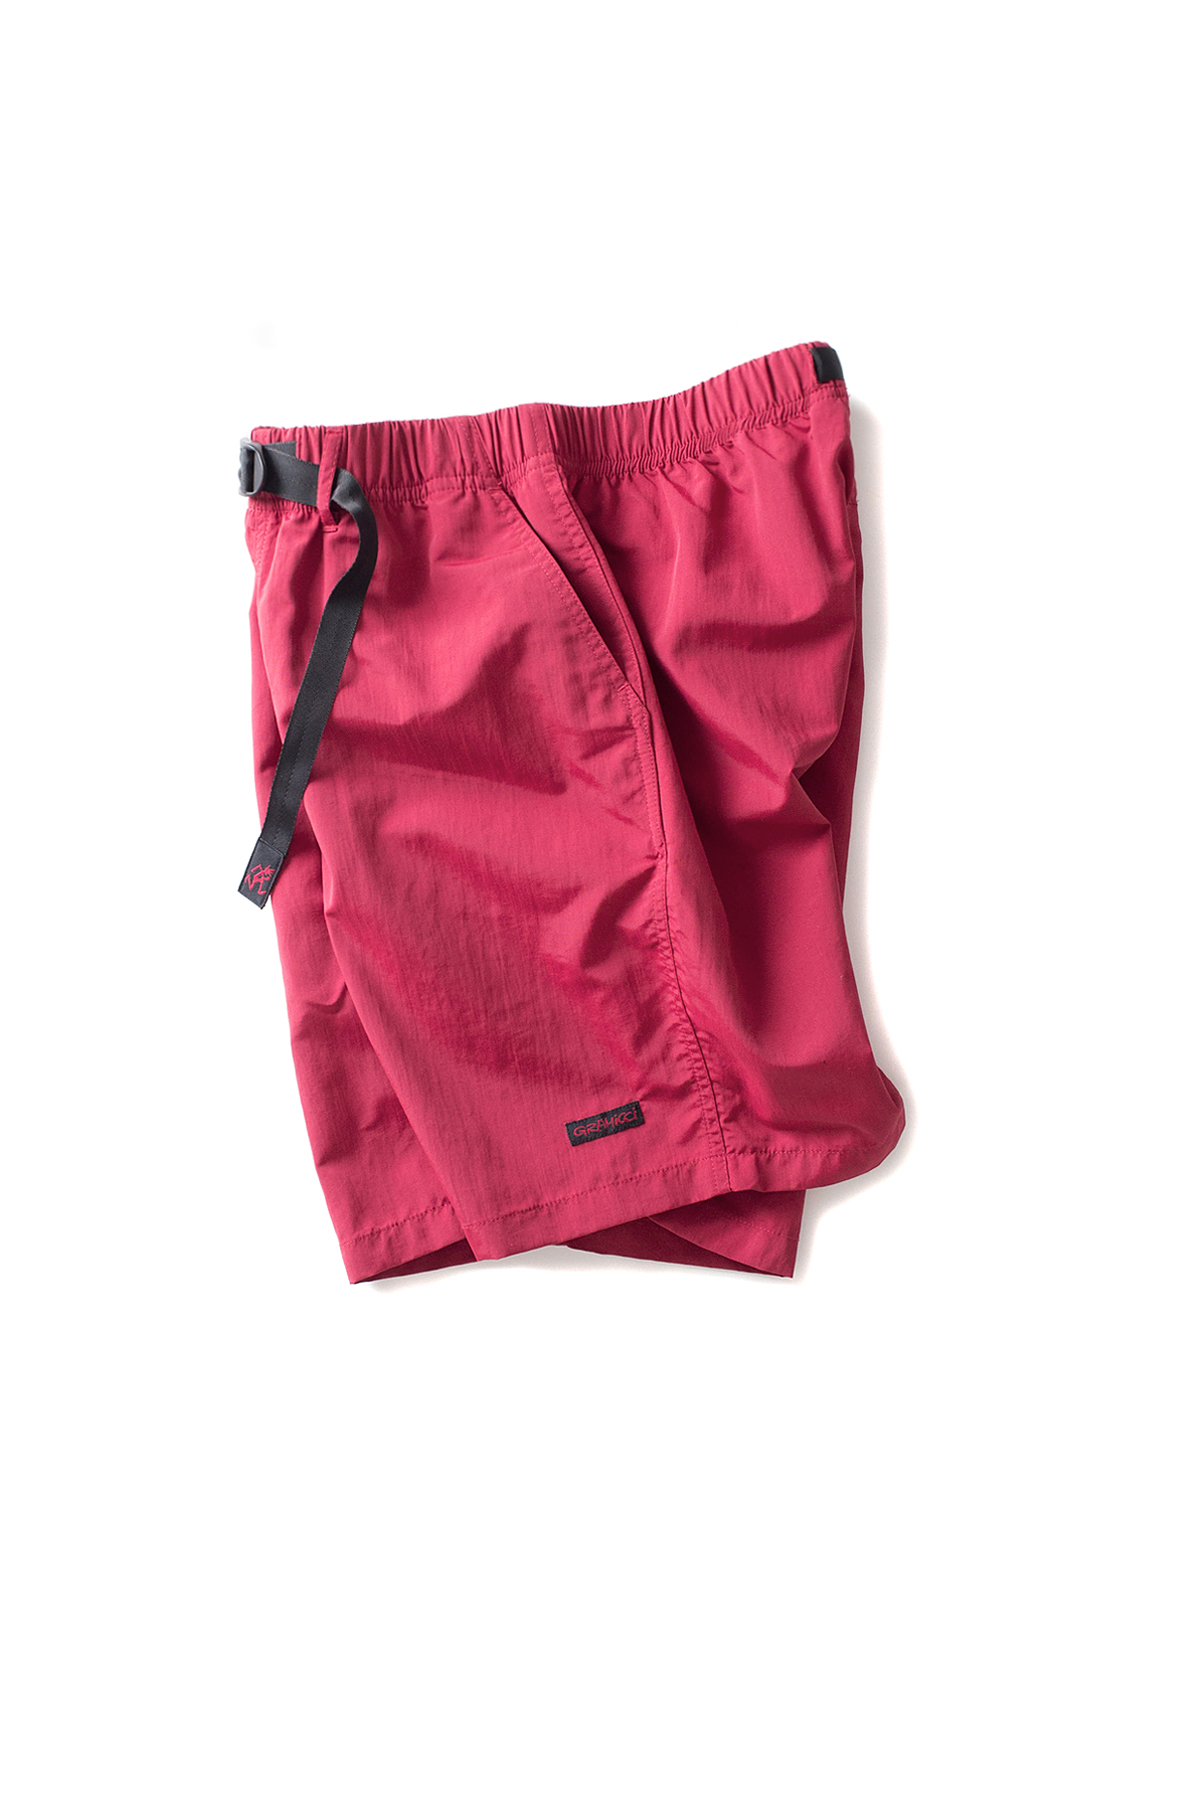 Gramicci : Packable Shorts (Red)